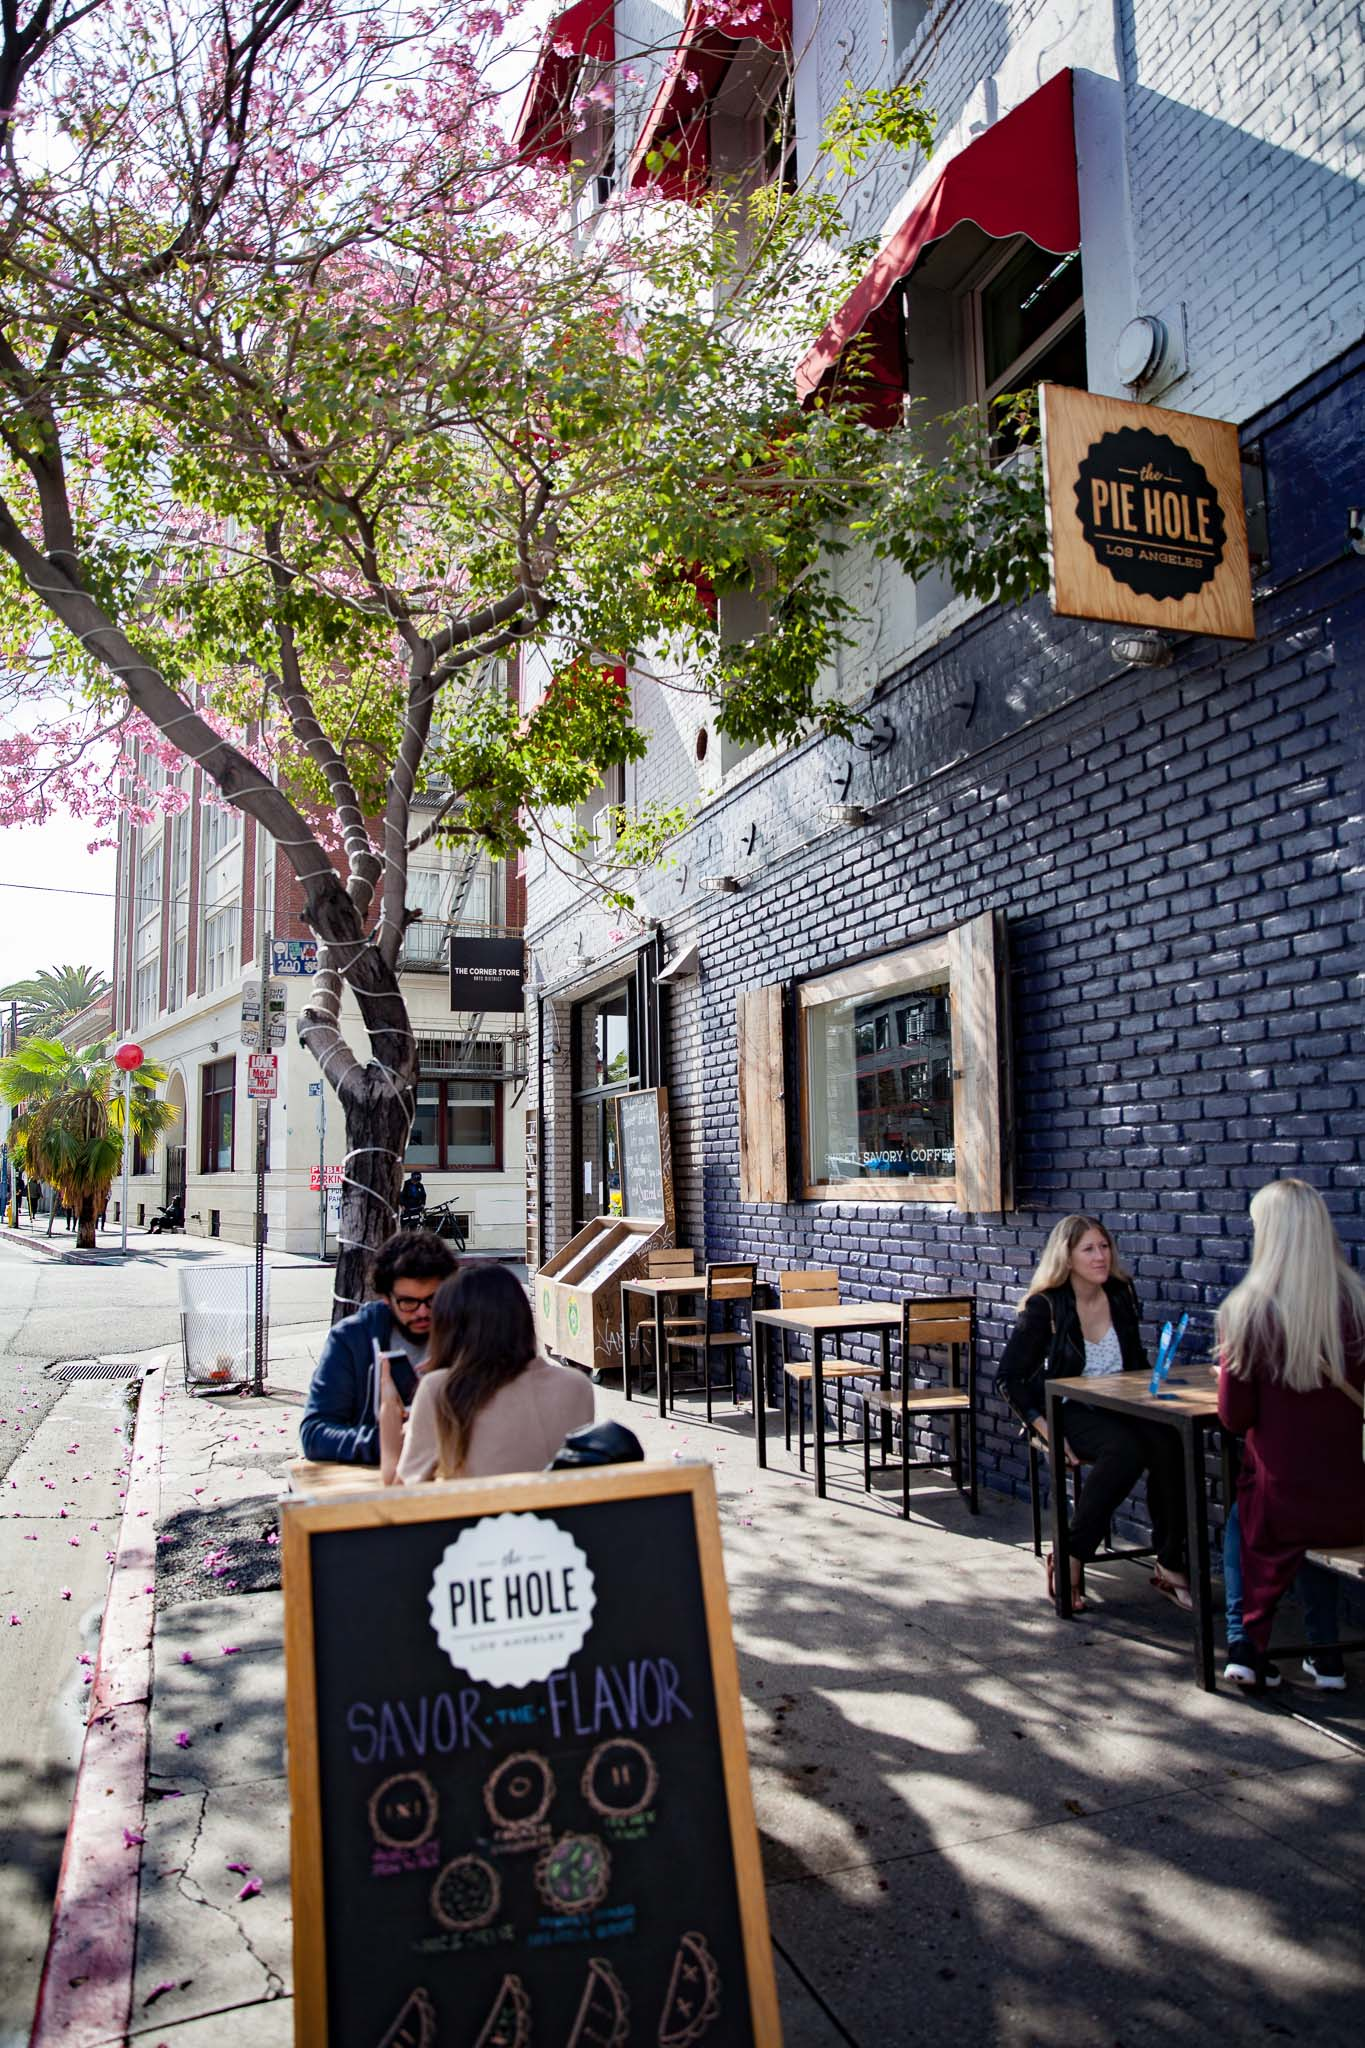 La terrasse de Pie Hole sur Traction Ave Los Angeles autrement